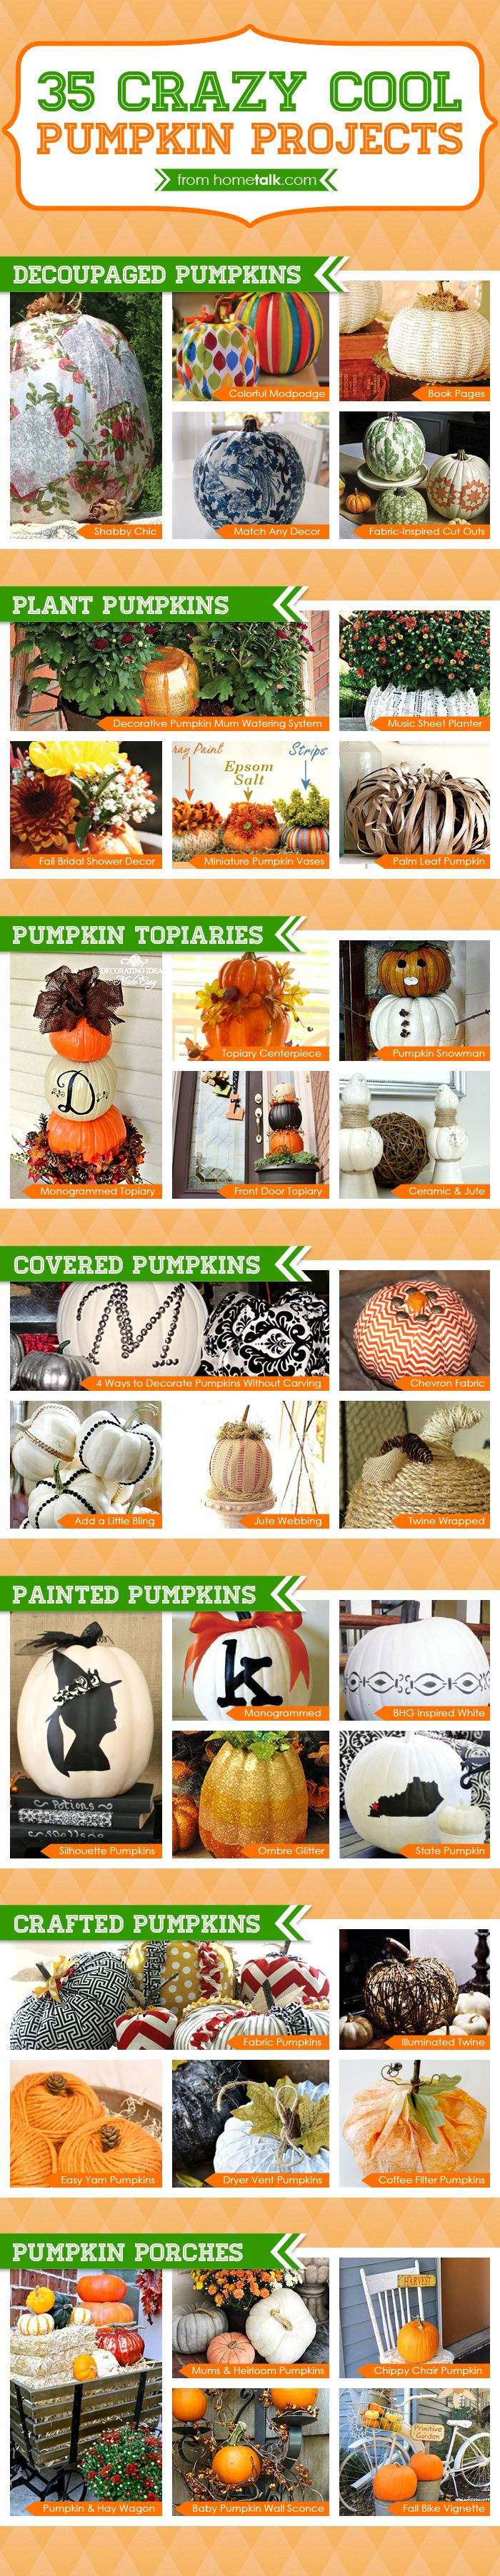 35+ crazy cool pumpkin ideas to try this fall. This is such an amazing list!